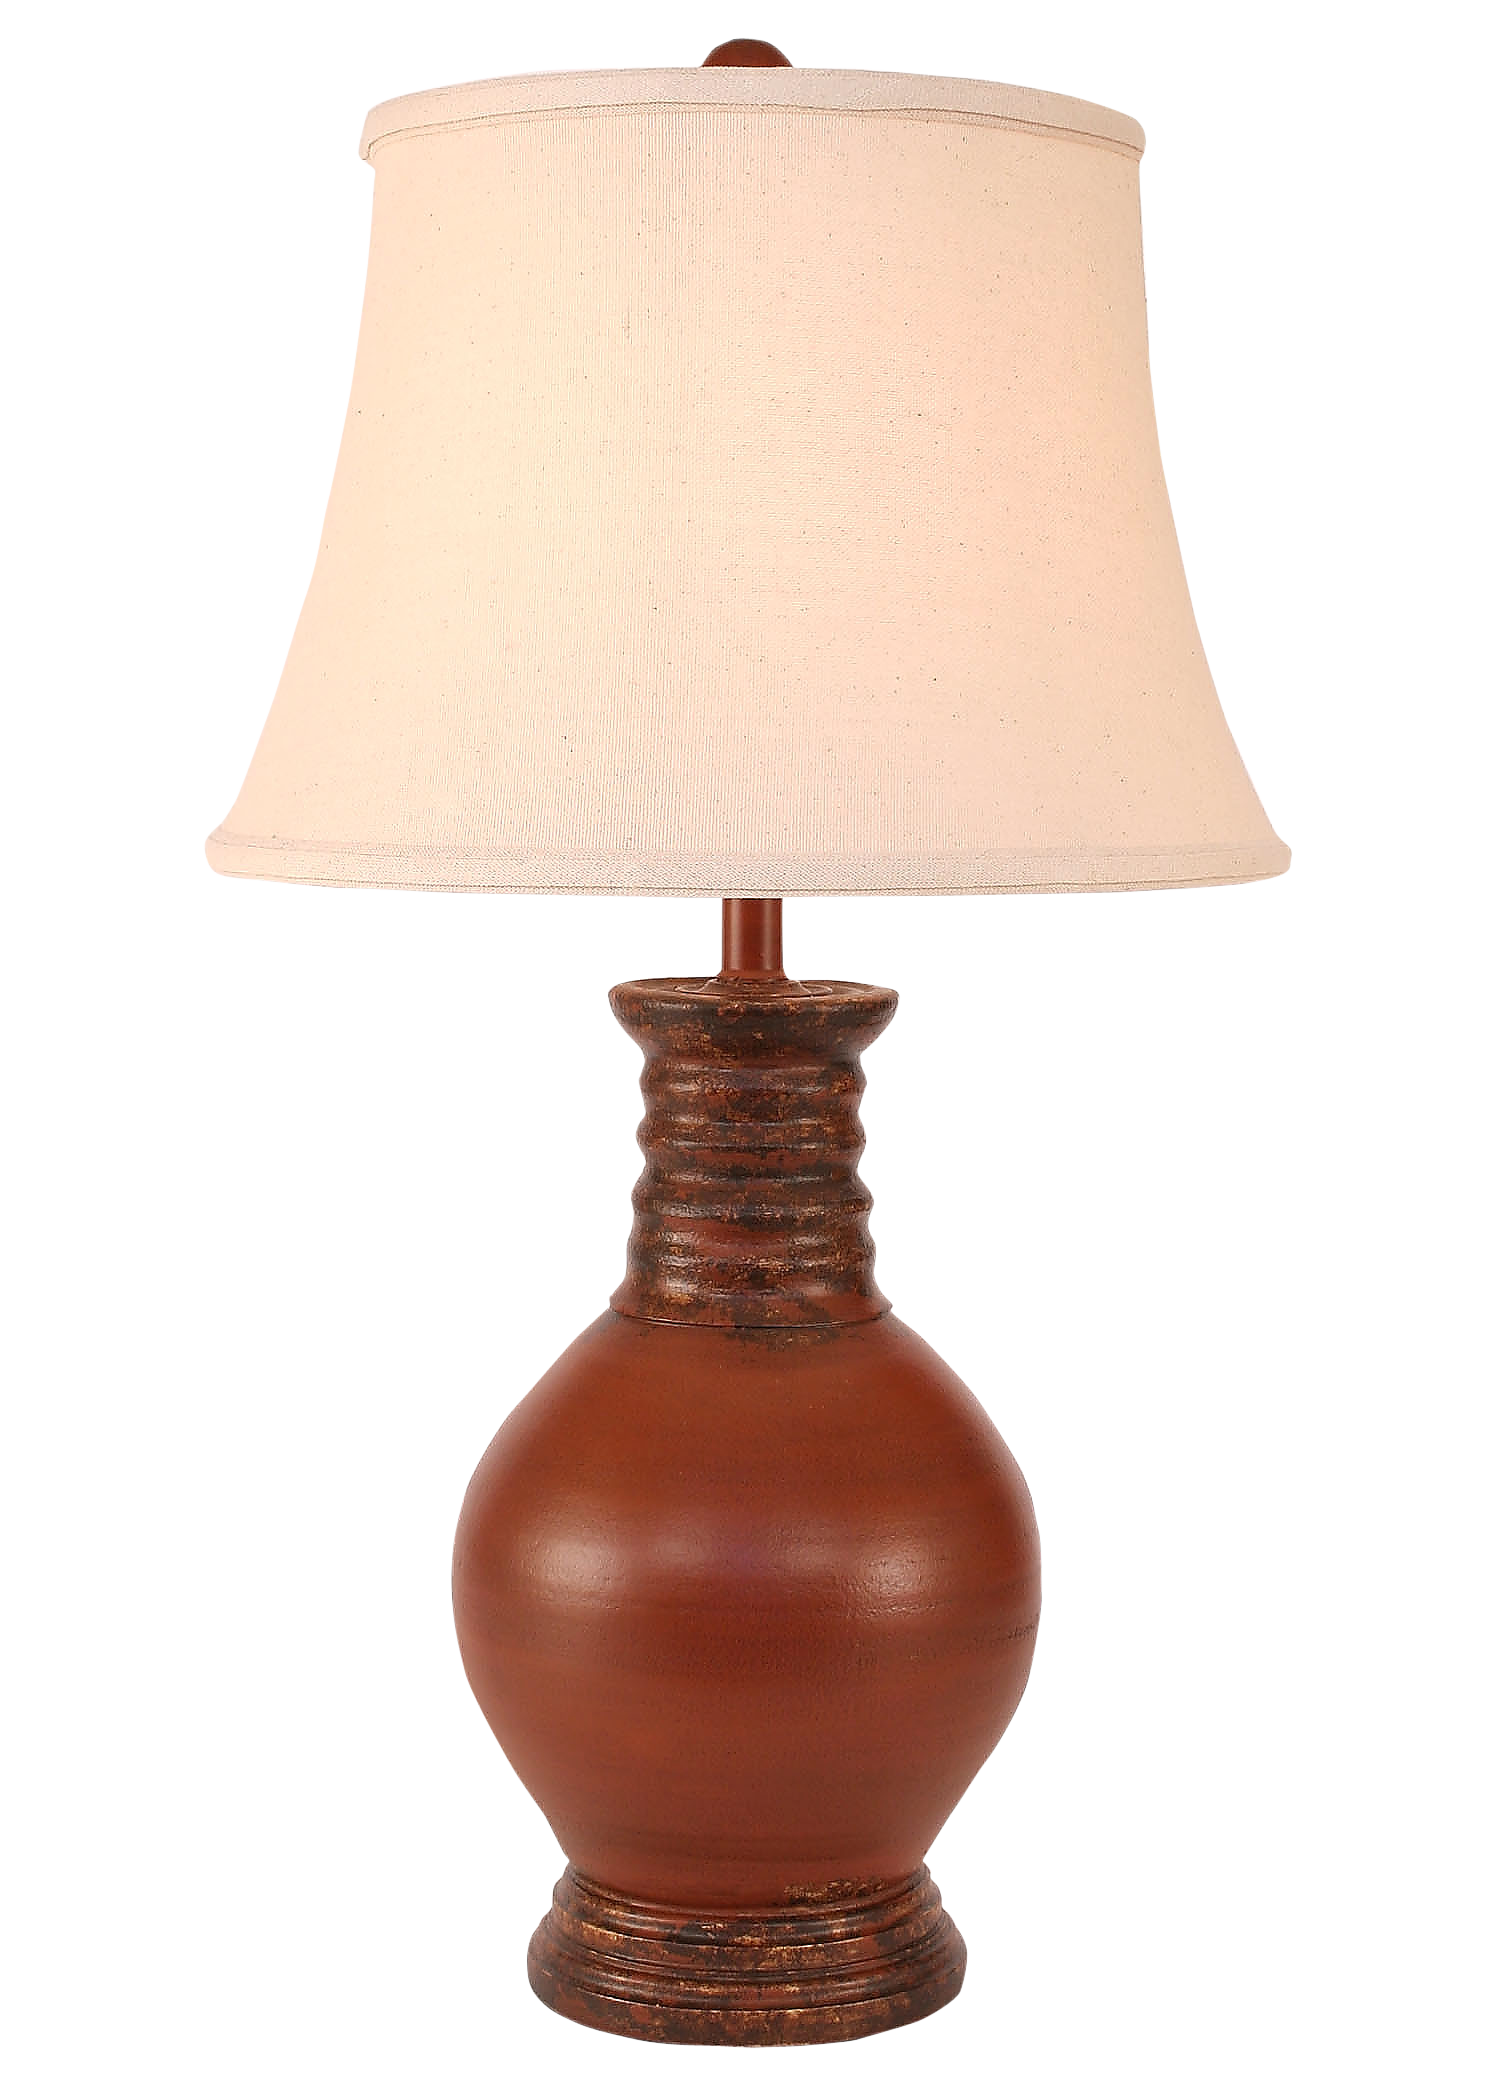 Aged Spice Bulbous Table Lamp - Coast Lamp Shop